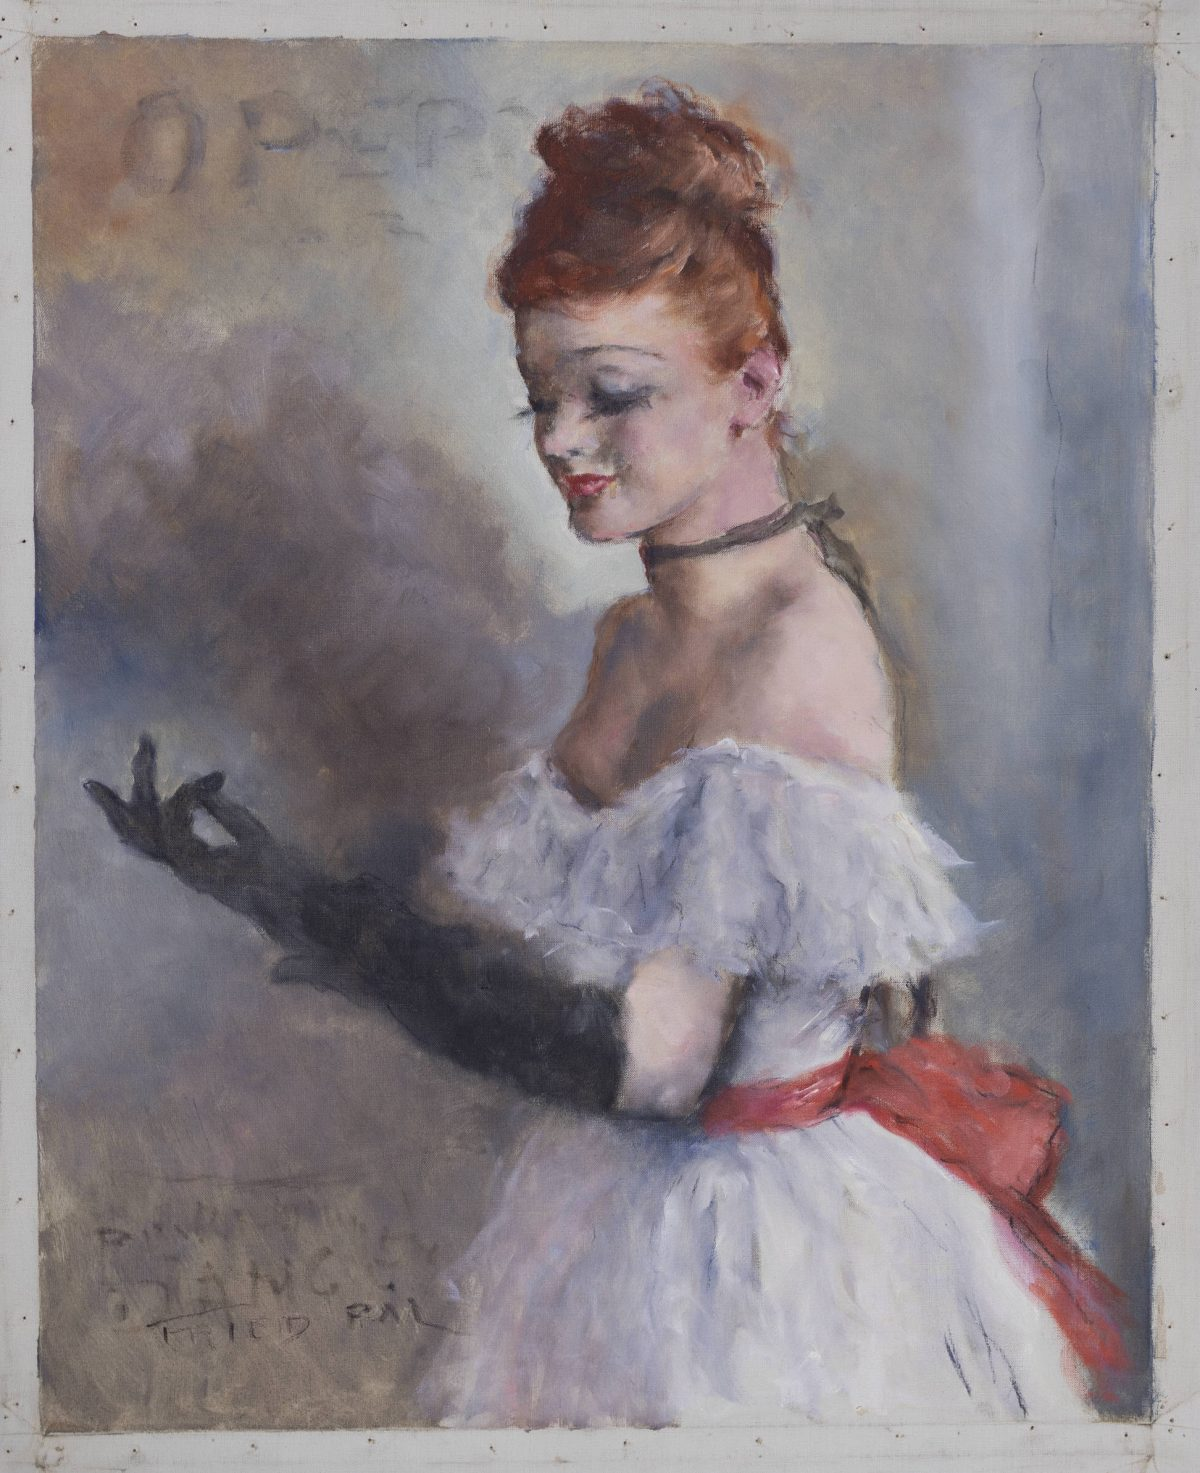 Pál Fried - Untitled (Woman at the opera)